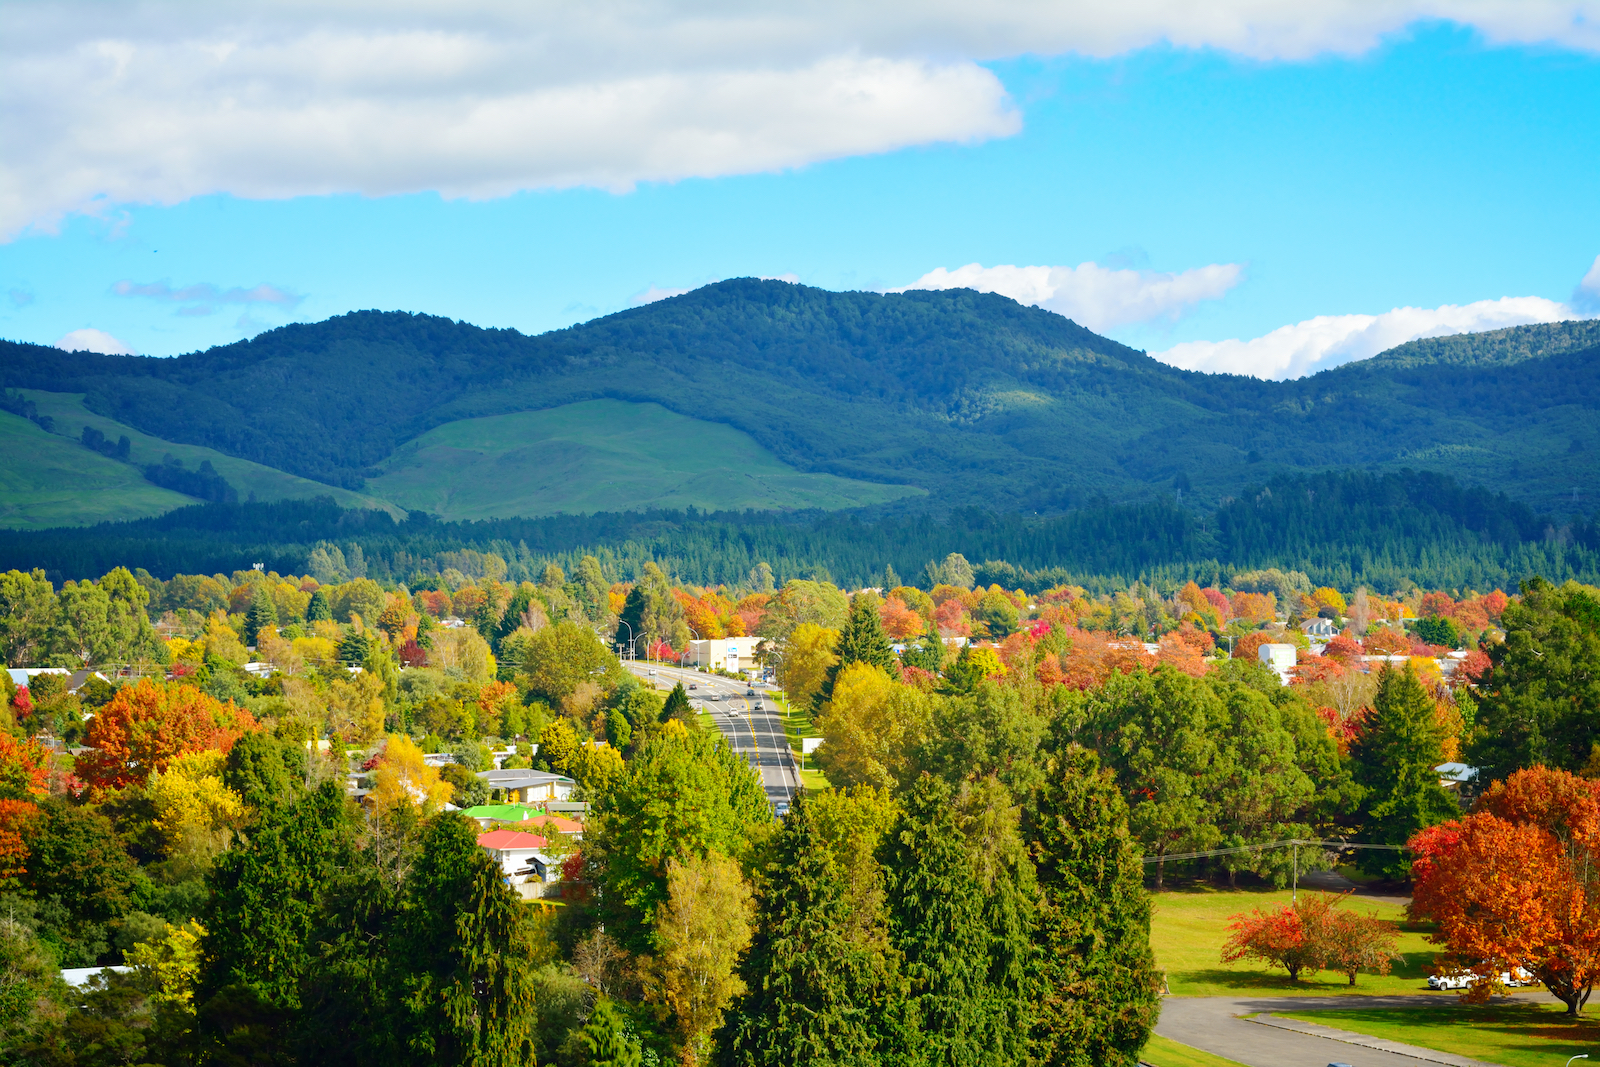 Trees and mountains in Turangi, New Zealand